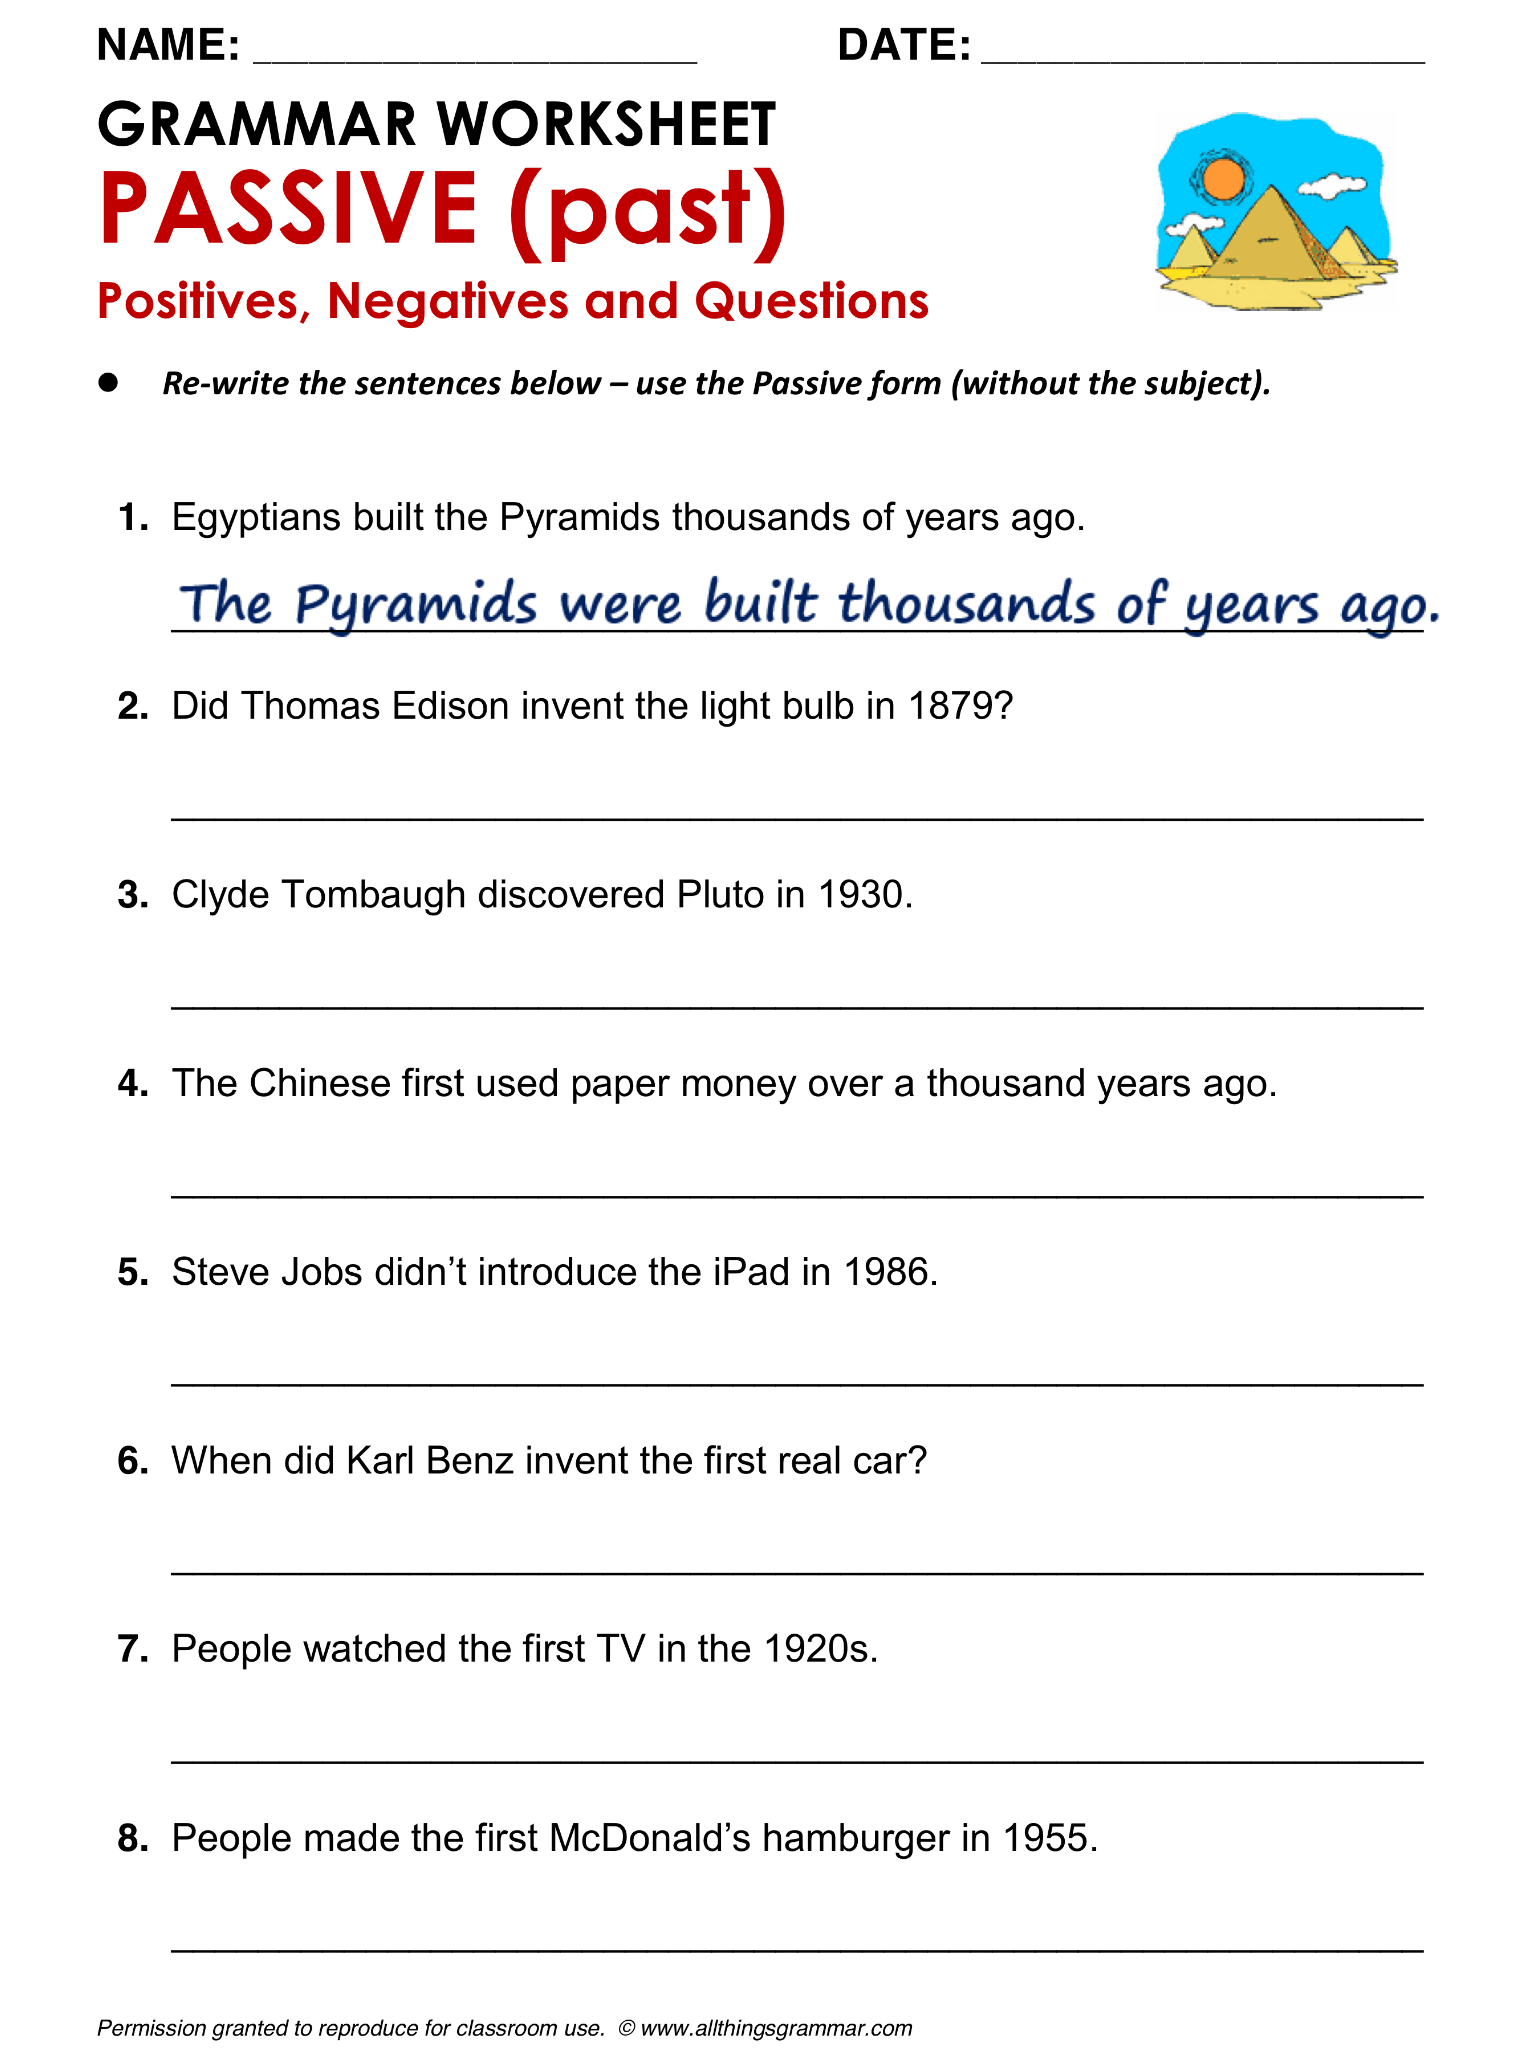 English Grammar Worksheet Passive Past Positives